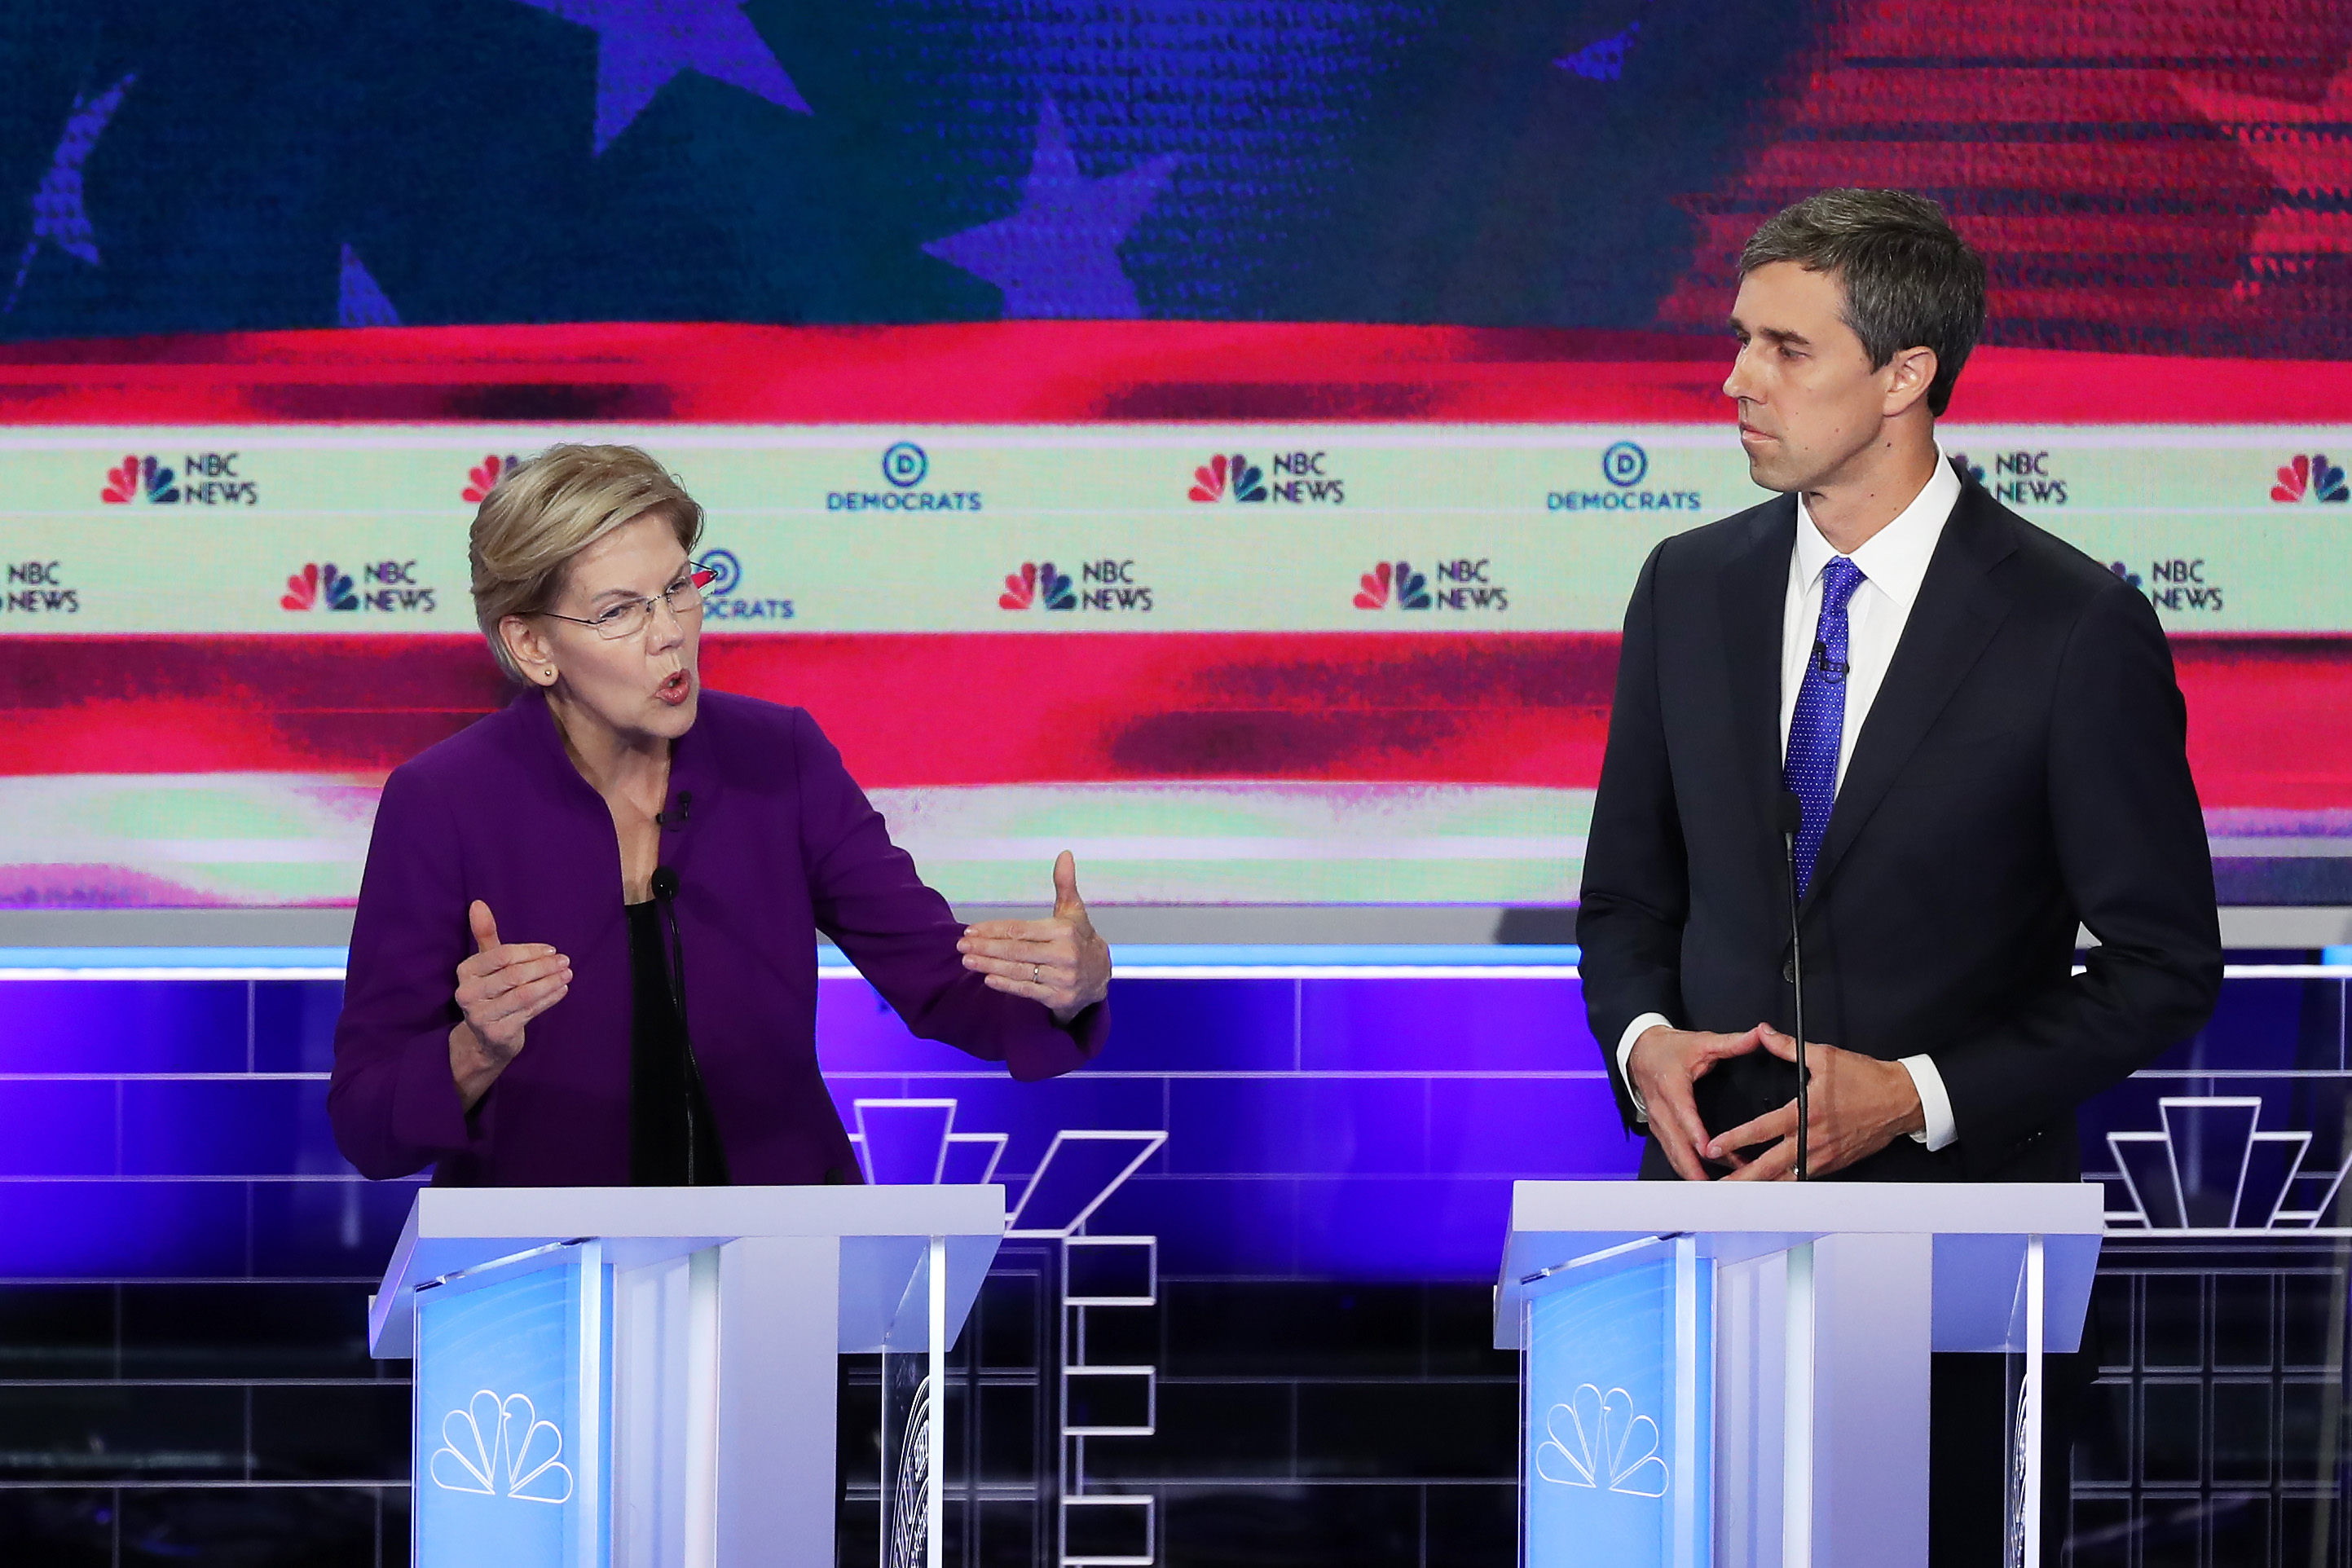 Sen. Elizabeth Warren (D-MA) and former Texas congressman Beto O'Rourke both said that climate change was the top threat to the United States during the first Democratic 2020 presidential debate.